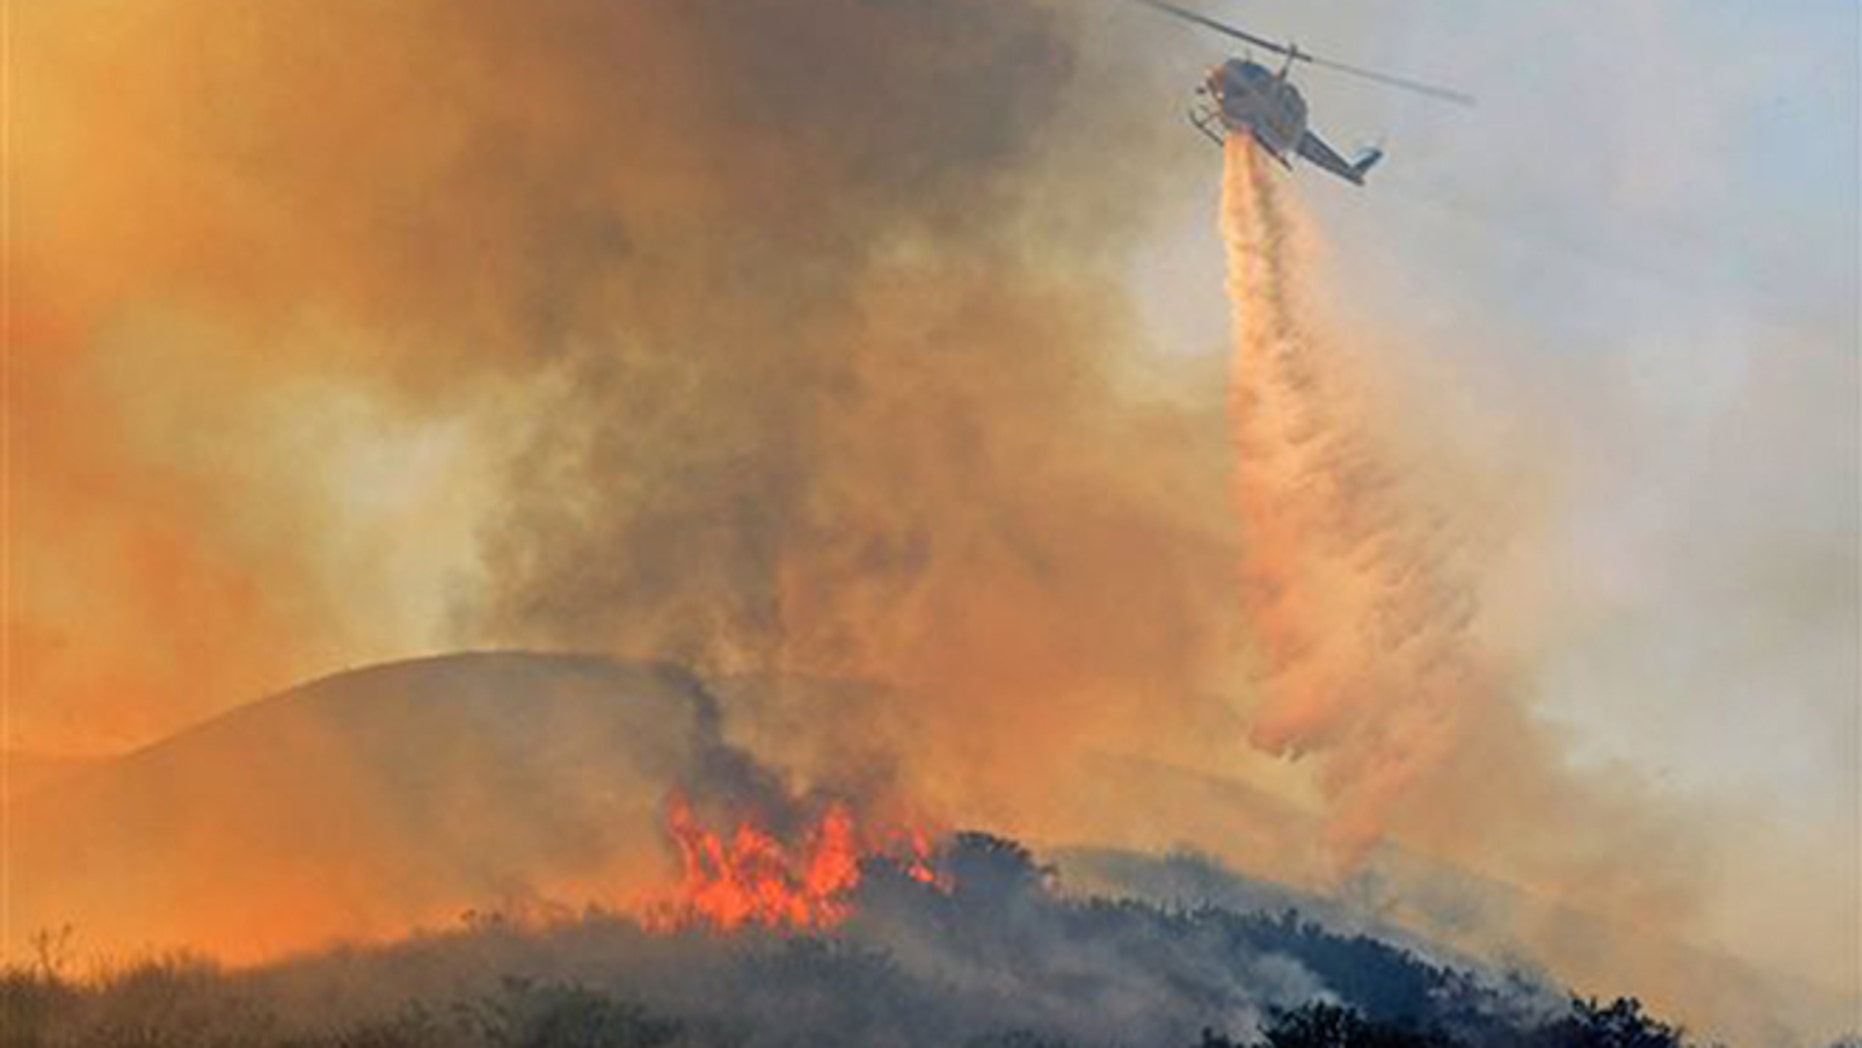 A Ventura County Fire helicopter makes a water drop on an oil field service road while working a wildfire in Ventura County, Calif. on Saturday, Dec. 26, 2015. (Mike Eliason/Santa Barbara County Fire Dept. via AP)